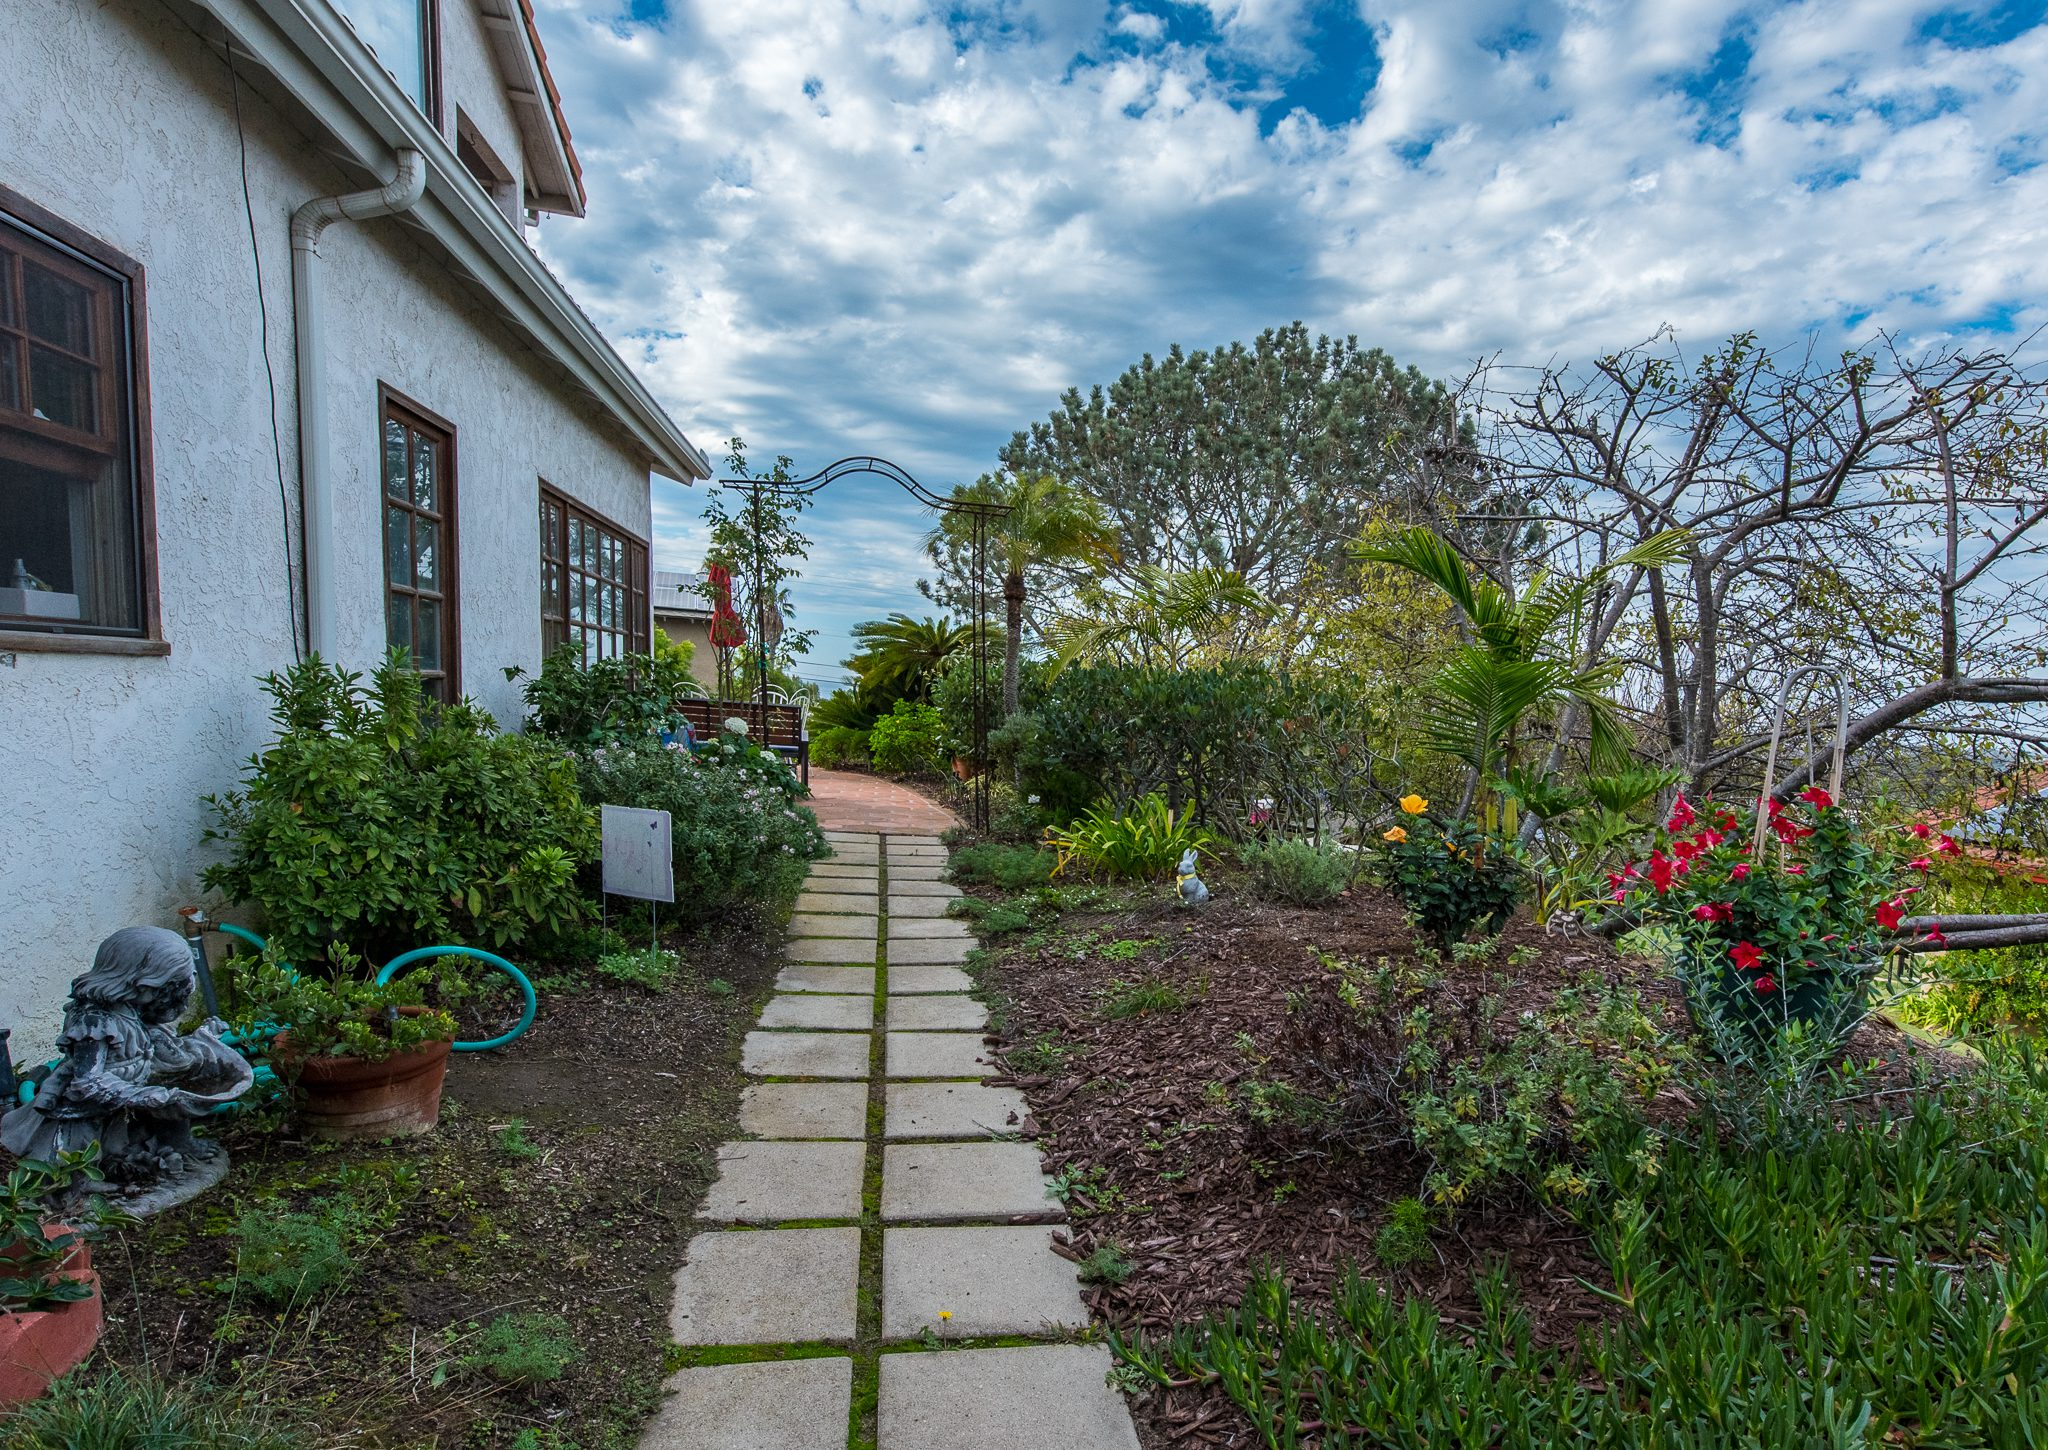 Garden Walk - Kate Stanton Bed and Breakfast, San Diego Area